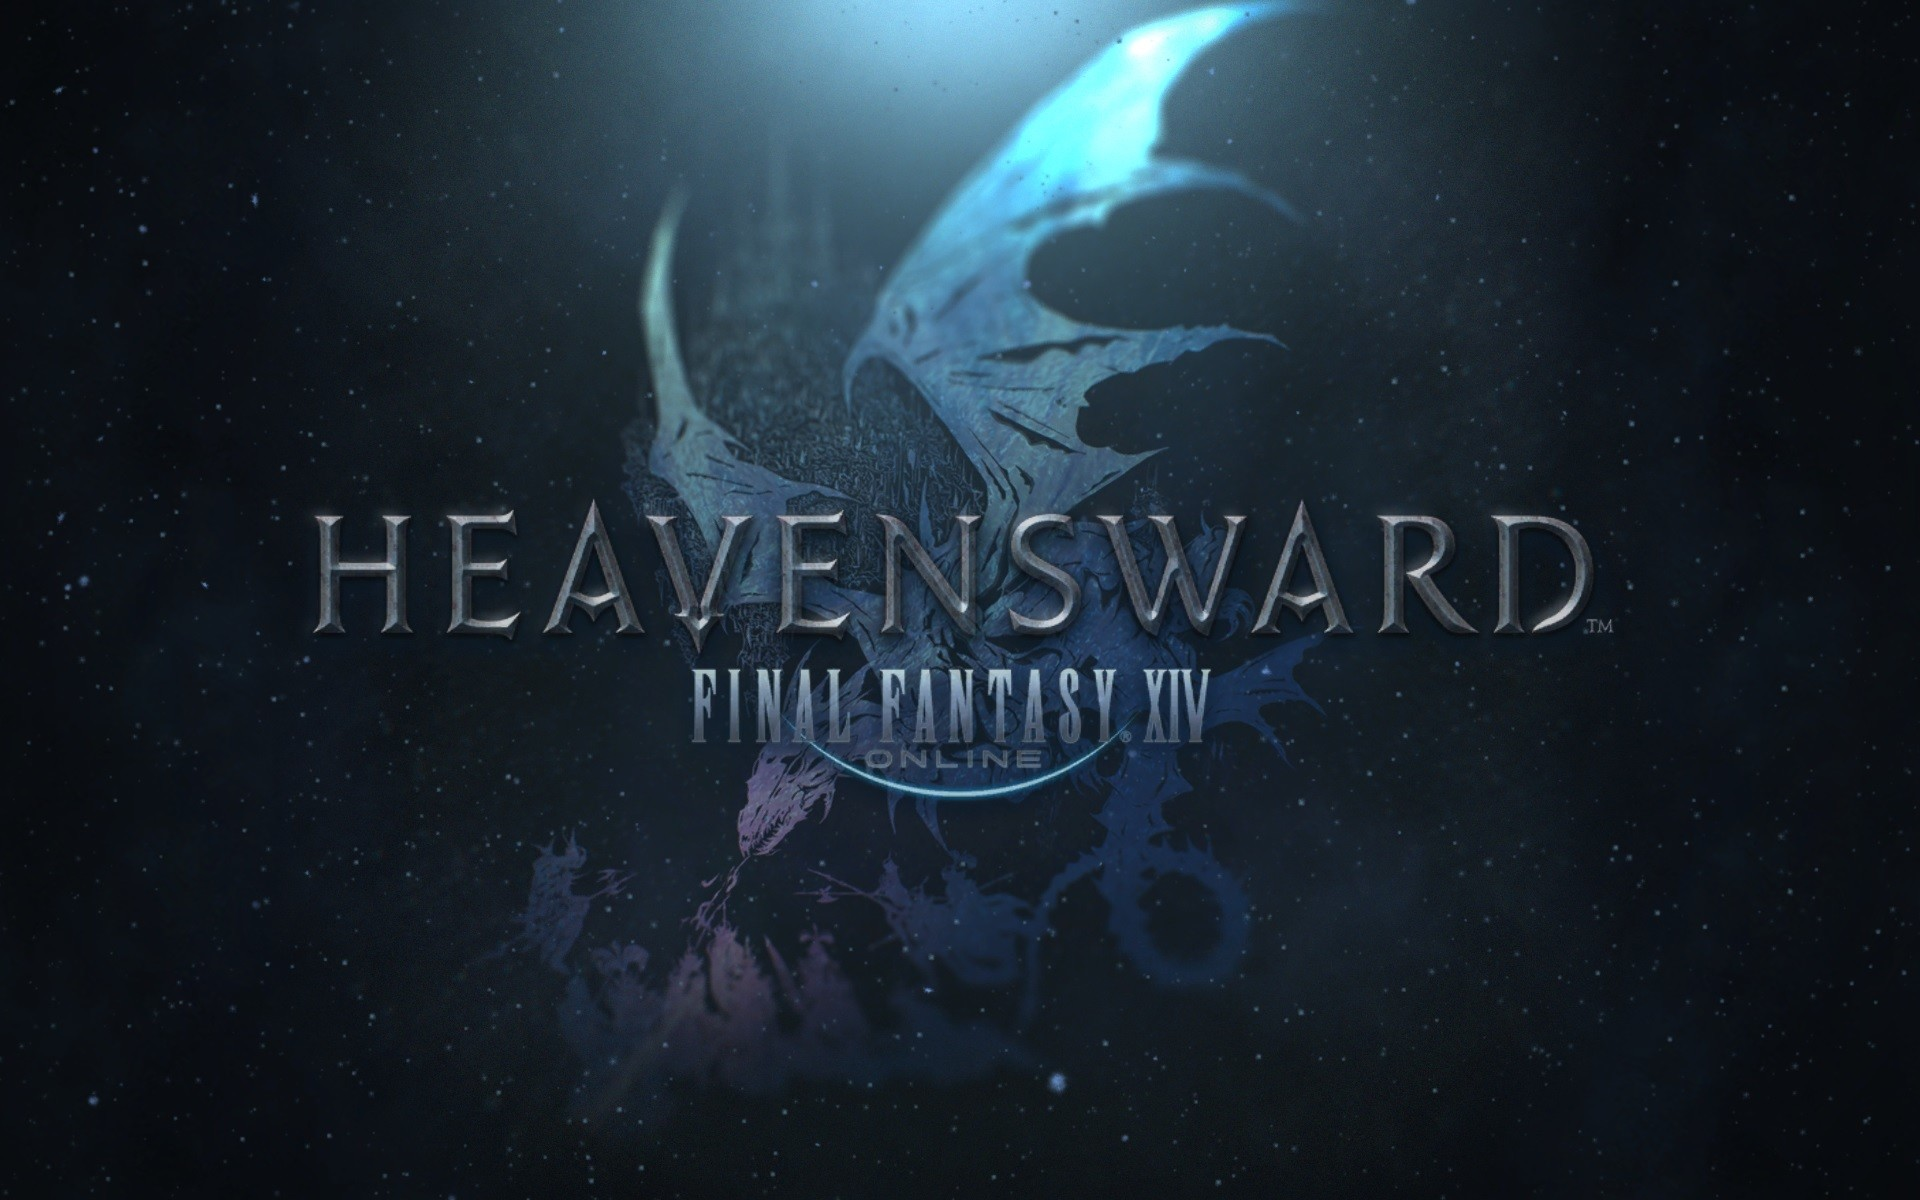 [Screenshot]I've been looking for a wallpaper of the opening screen to  Heavensward and couldn't find one. So I screenshotted it and love it!